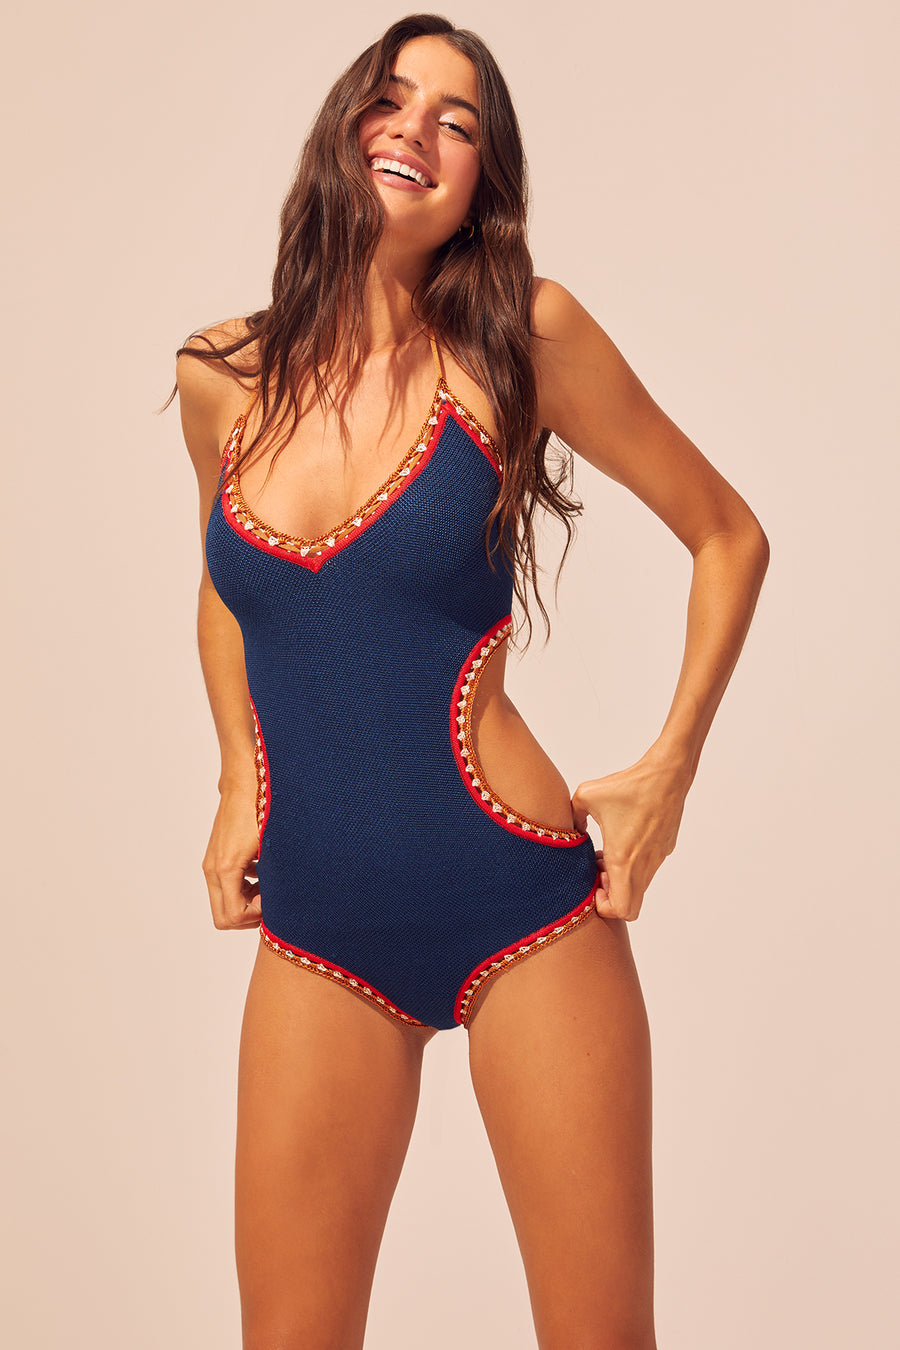 The Woodstock Crochet One Piece Solid Striped